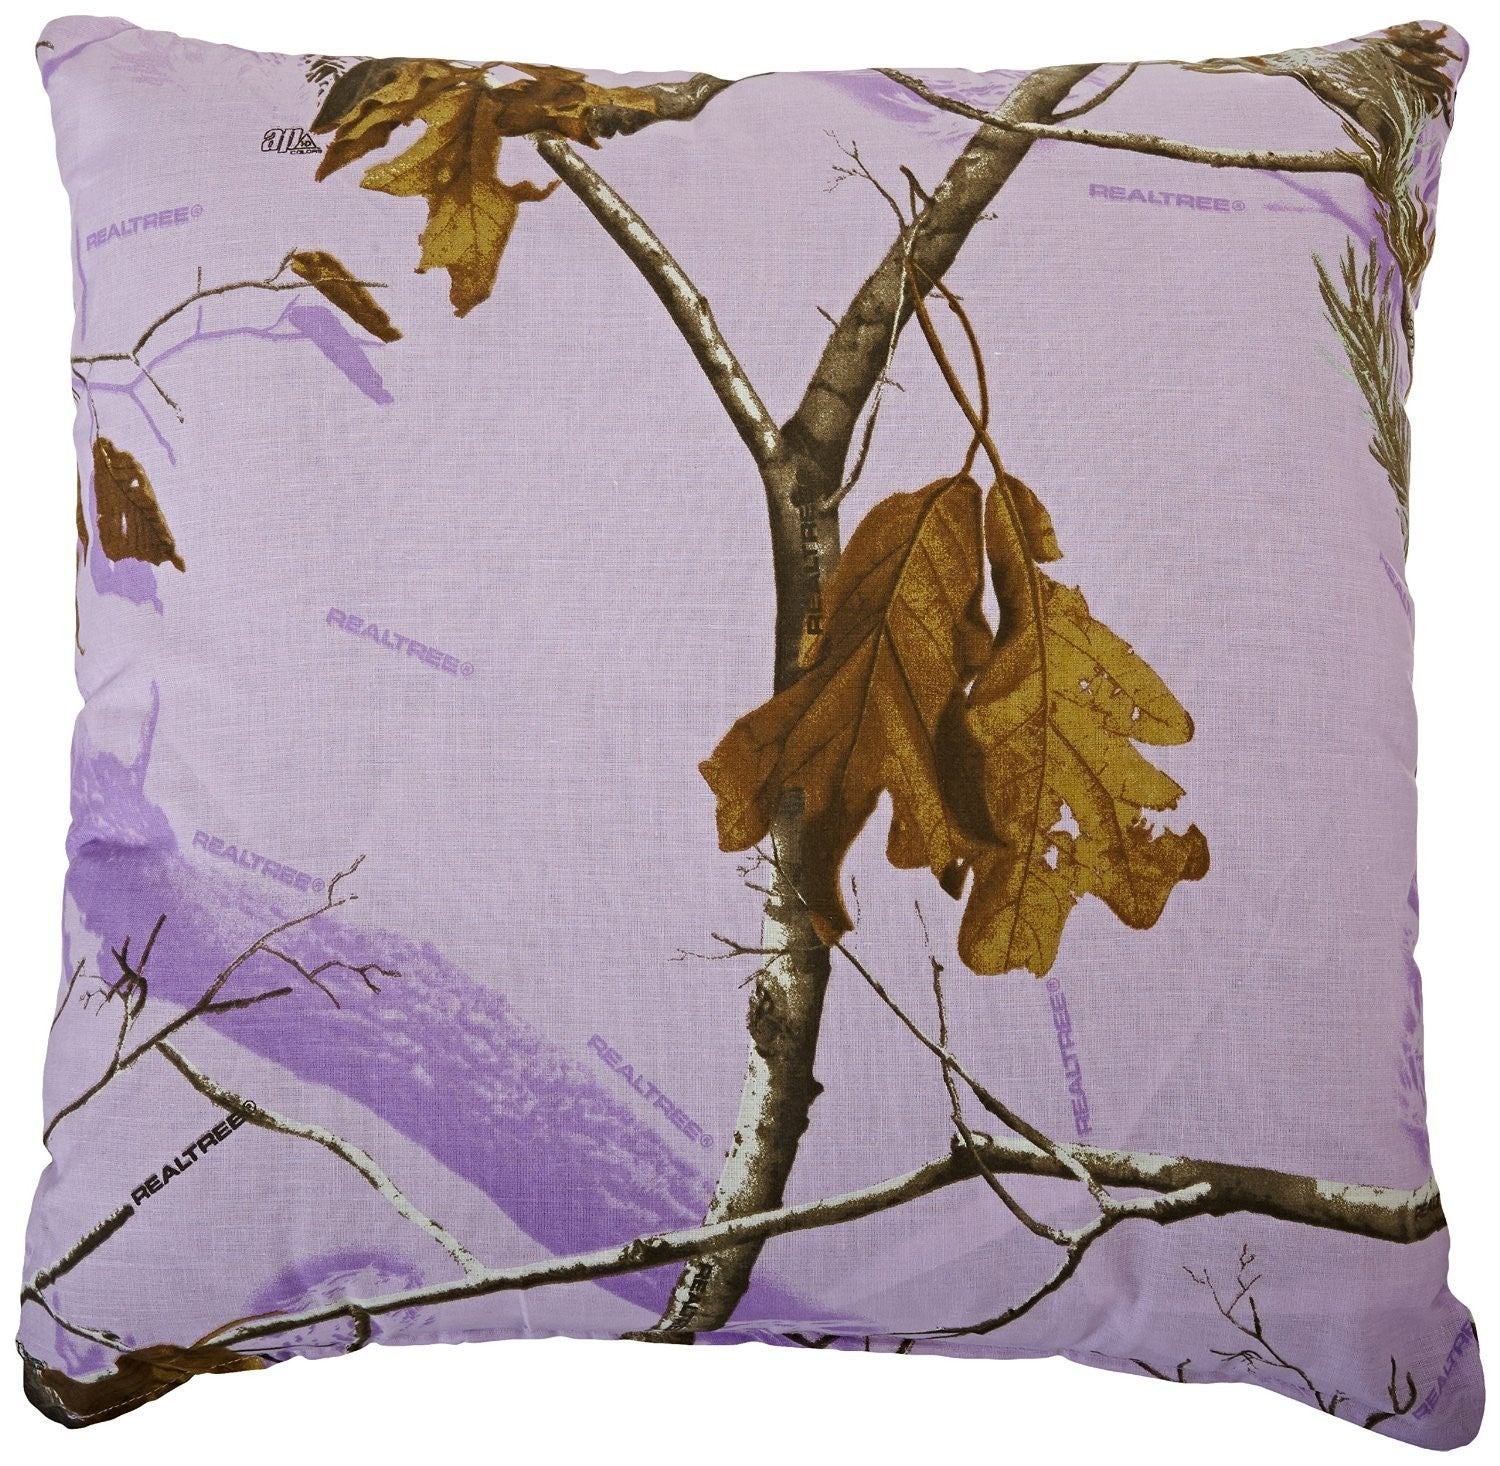 Kimlor Mills Realtree APC Square Pillow, Lavender - Back40Trading2